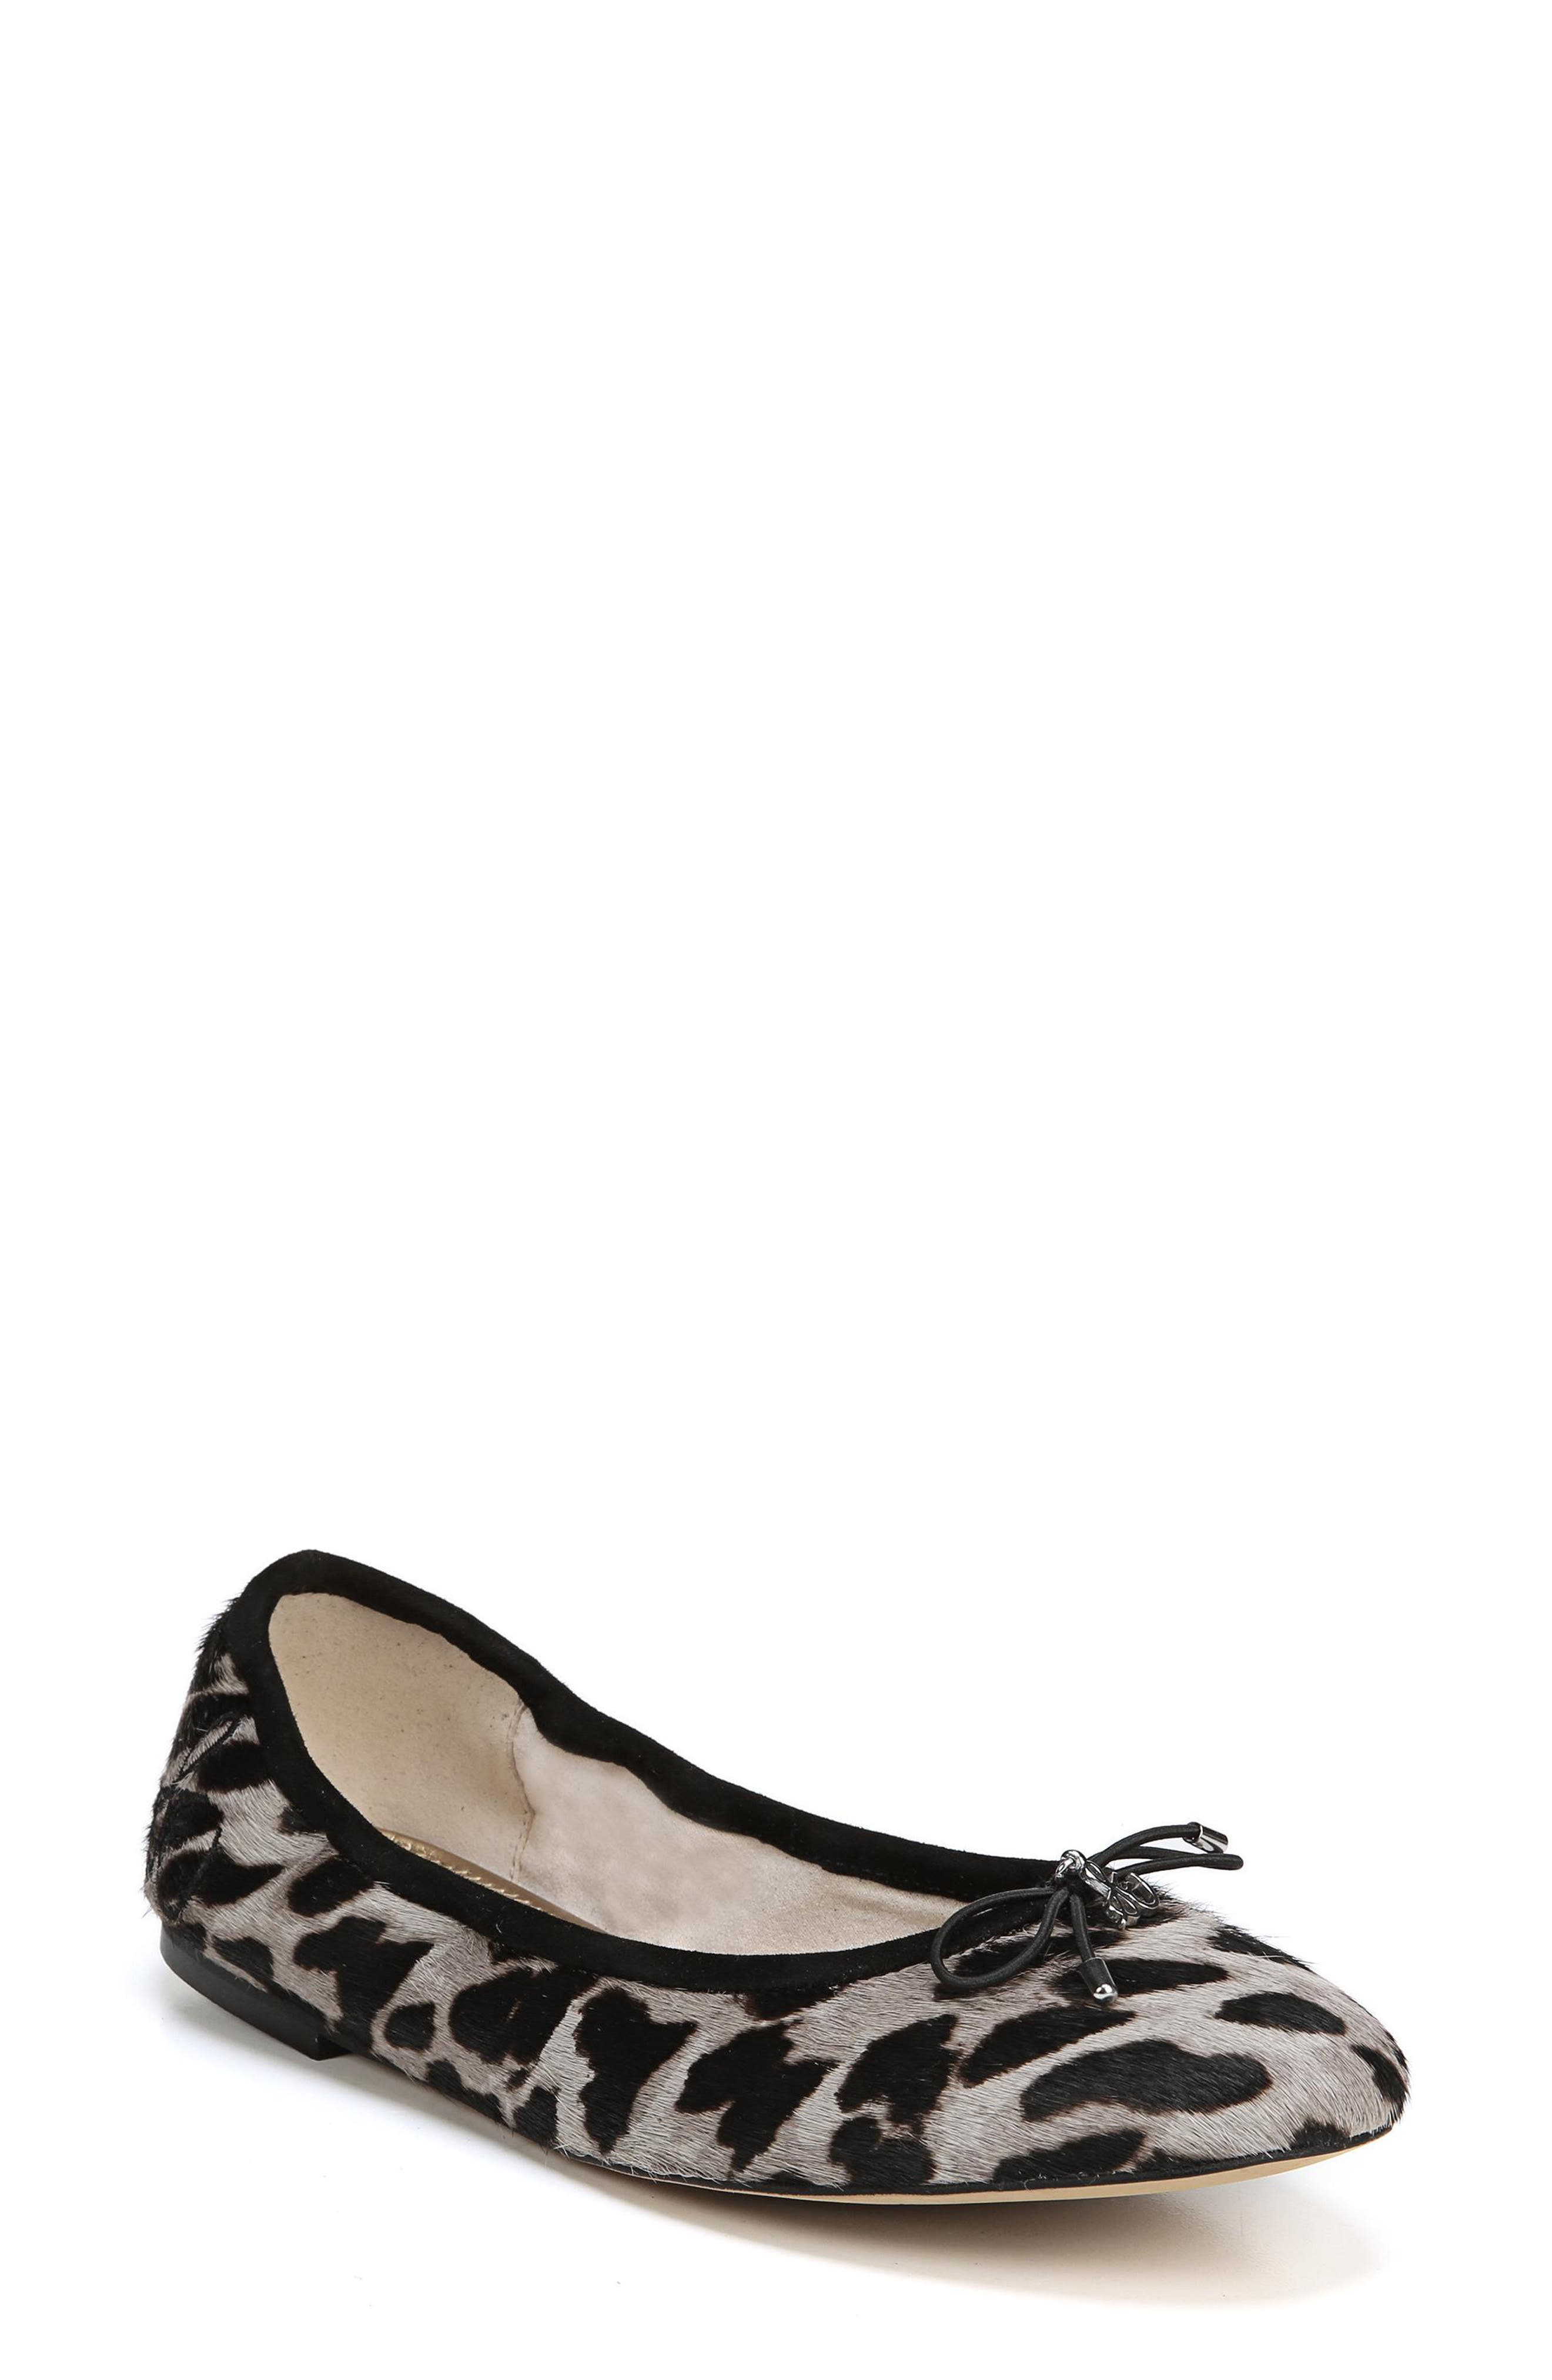 SAM EDELMAN Felicia Flat, Main, color, CLOUDED LEOPARD BRAHMA HAIR